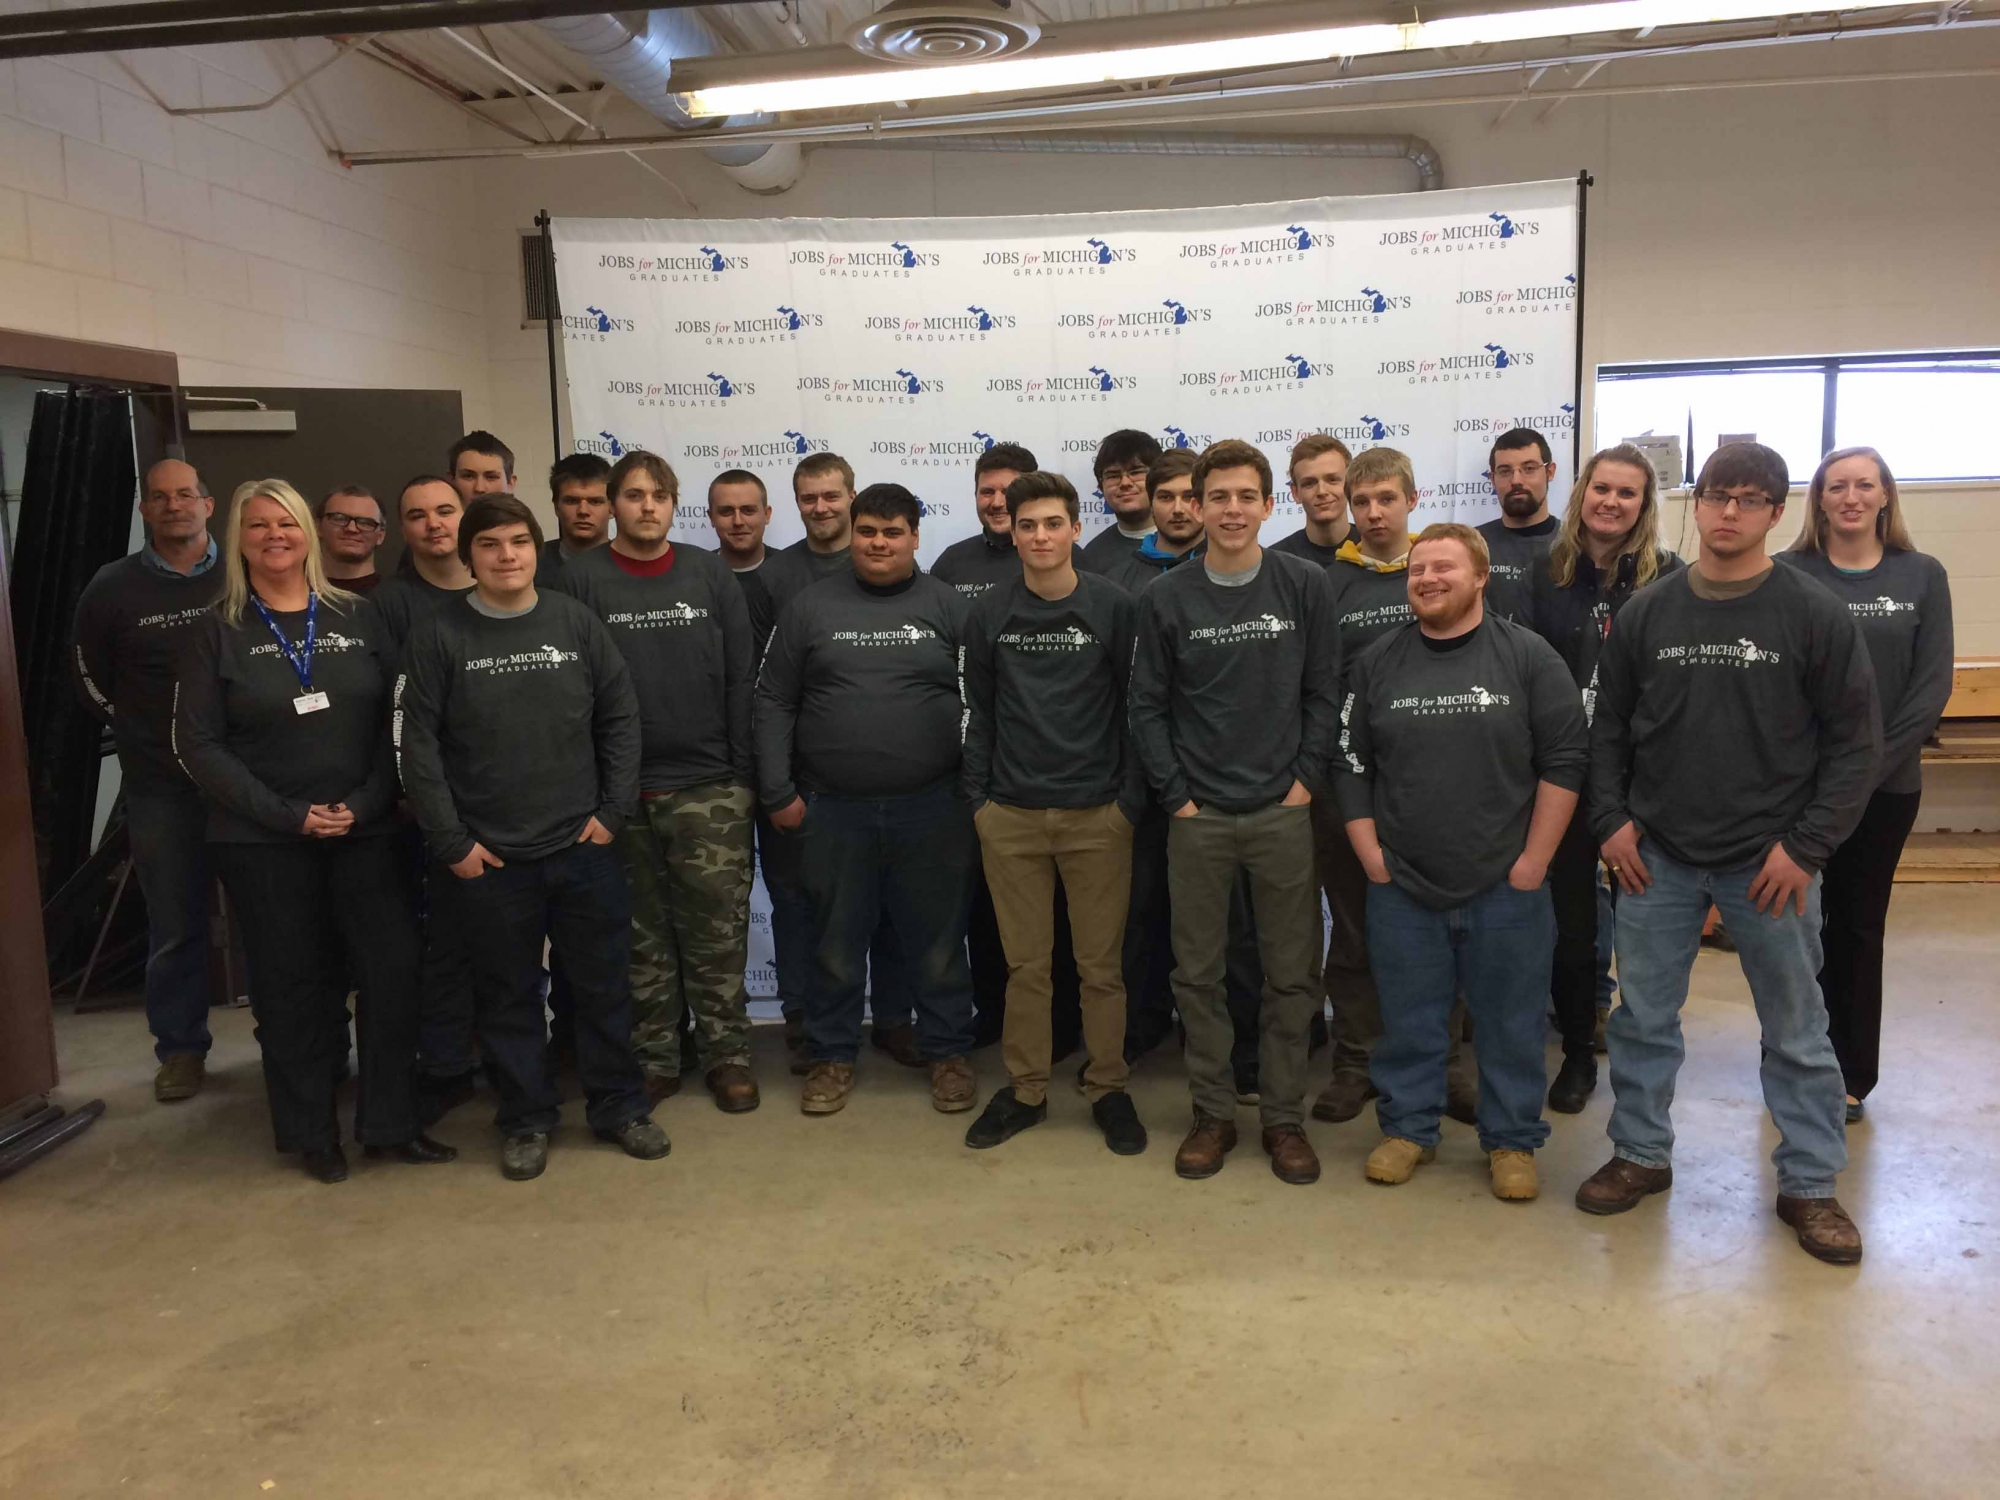 Jobs for michigans graduates kicks off in char em isd jobs for michgans graduates students in the char em isd career and technical education welding program at east jordan 1betcityfo Images